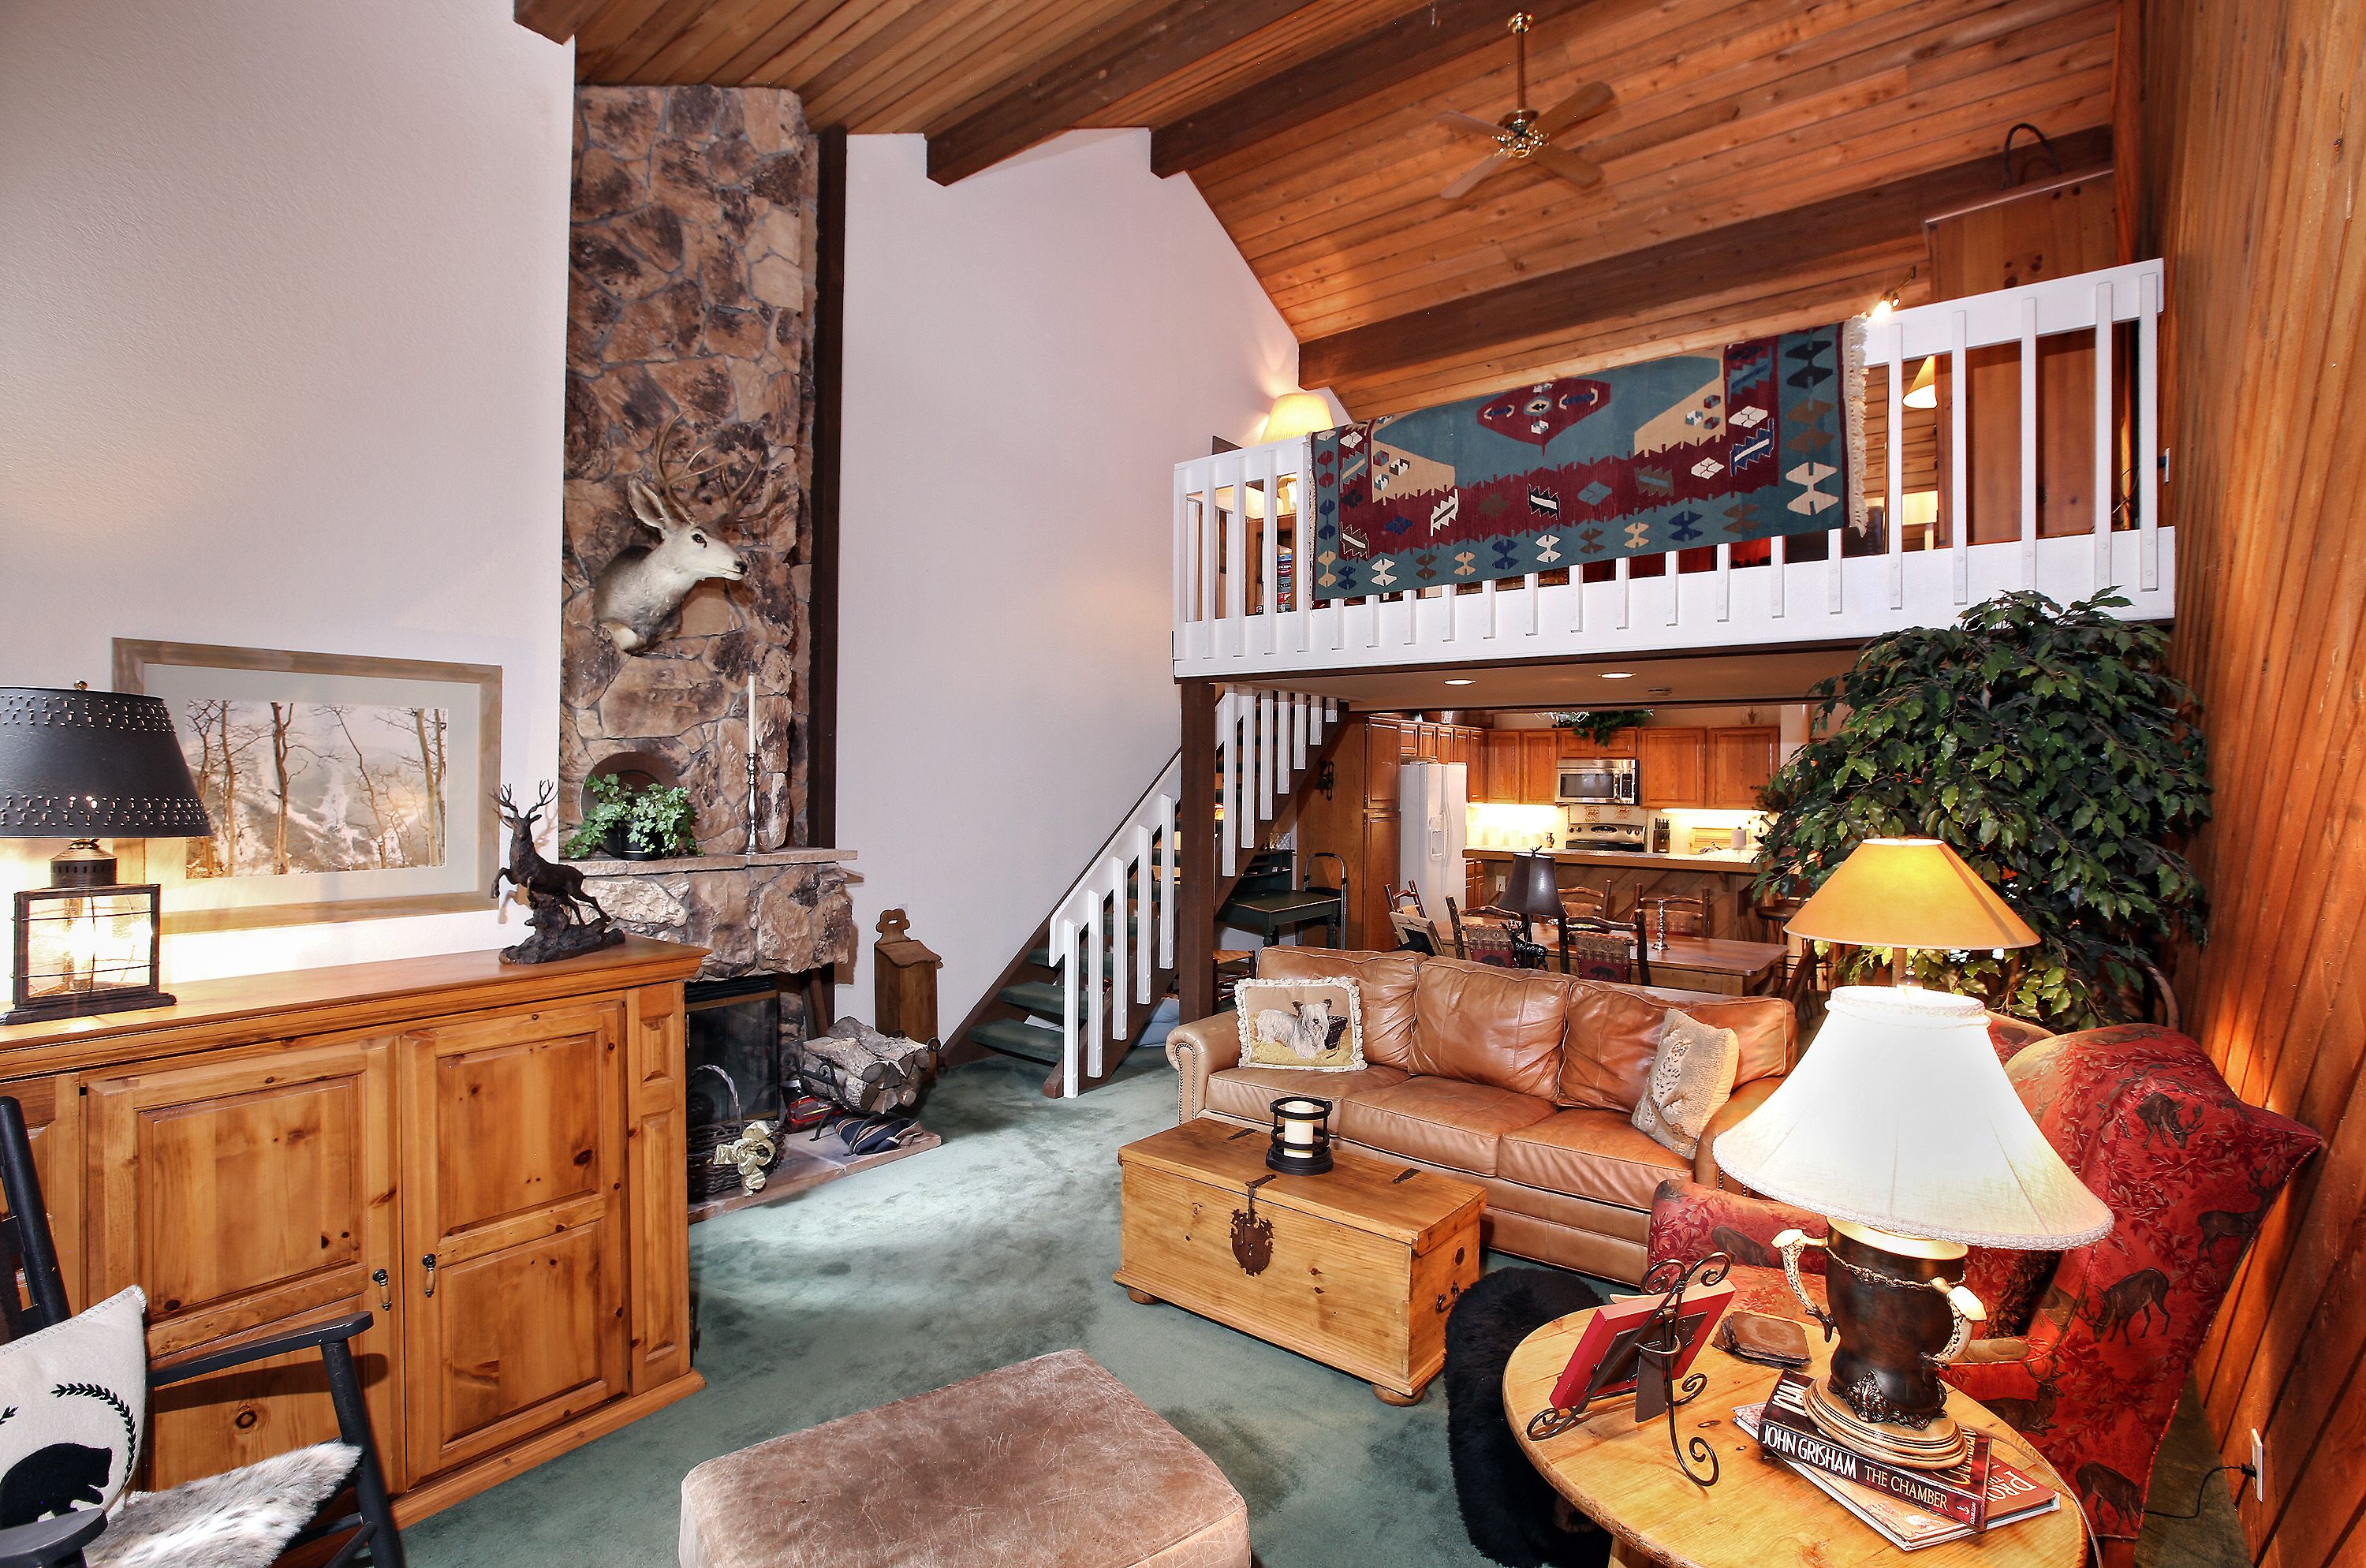 185 Willis Place # 204 Beaver Creek, CO 81620